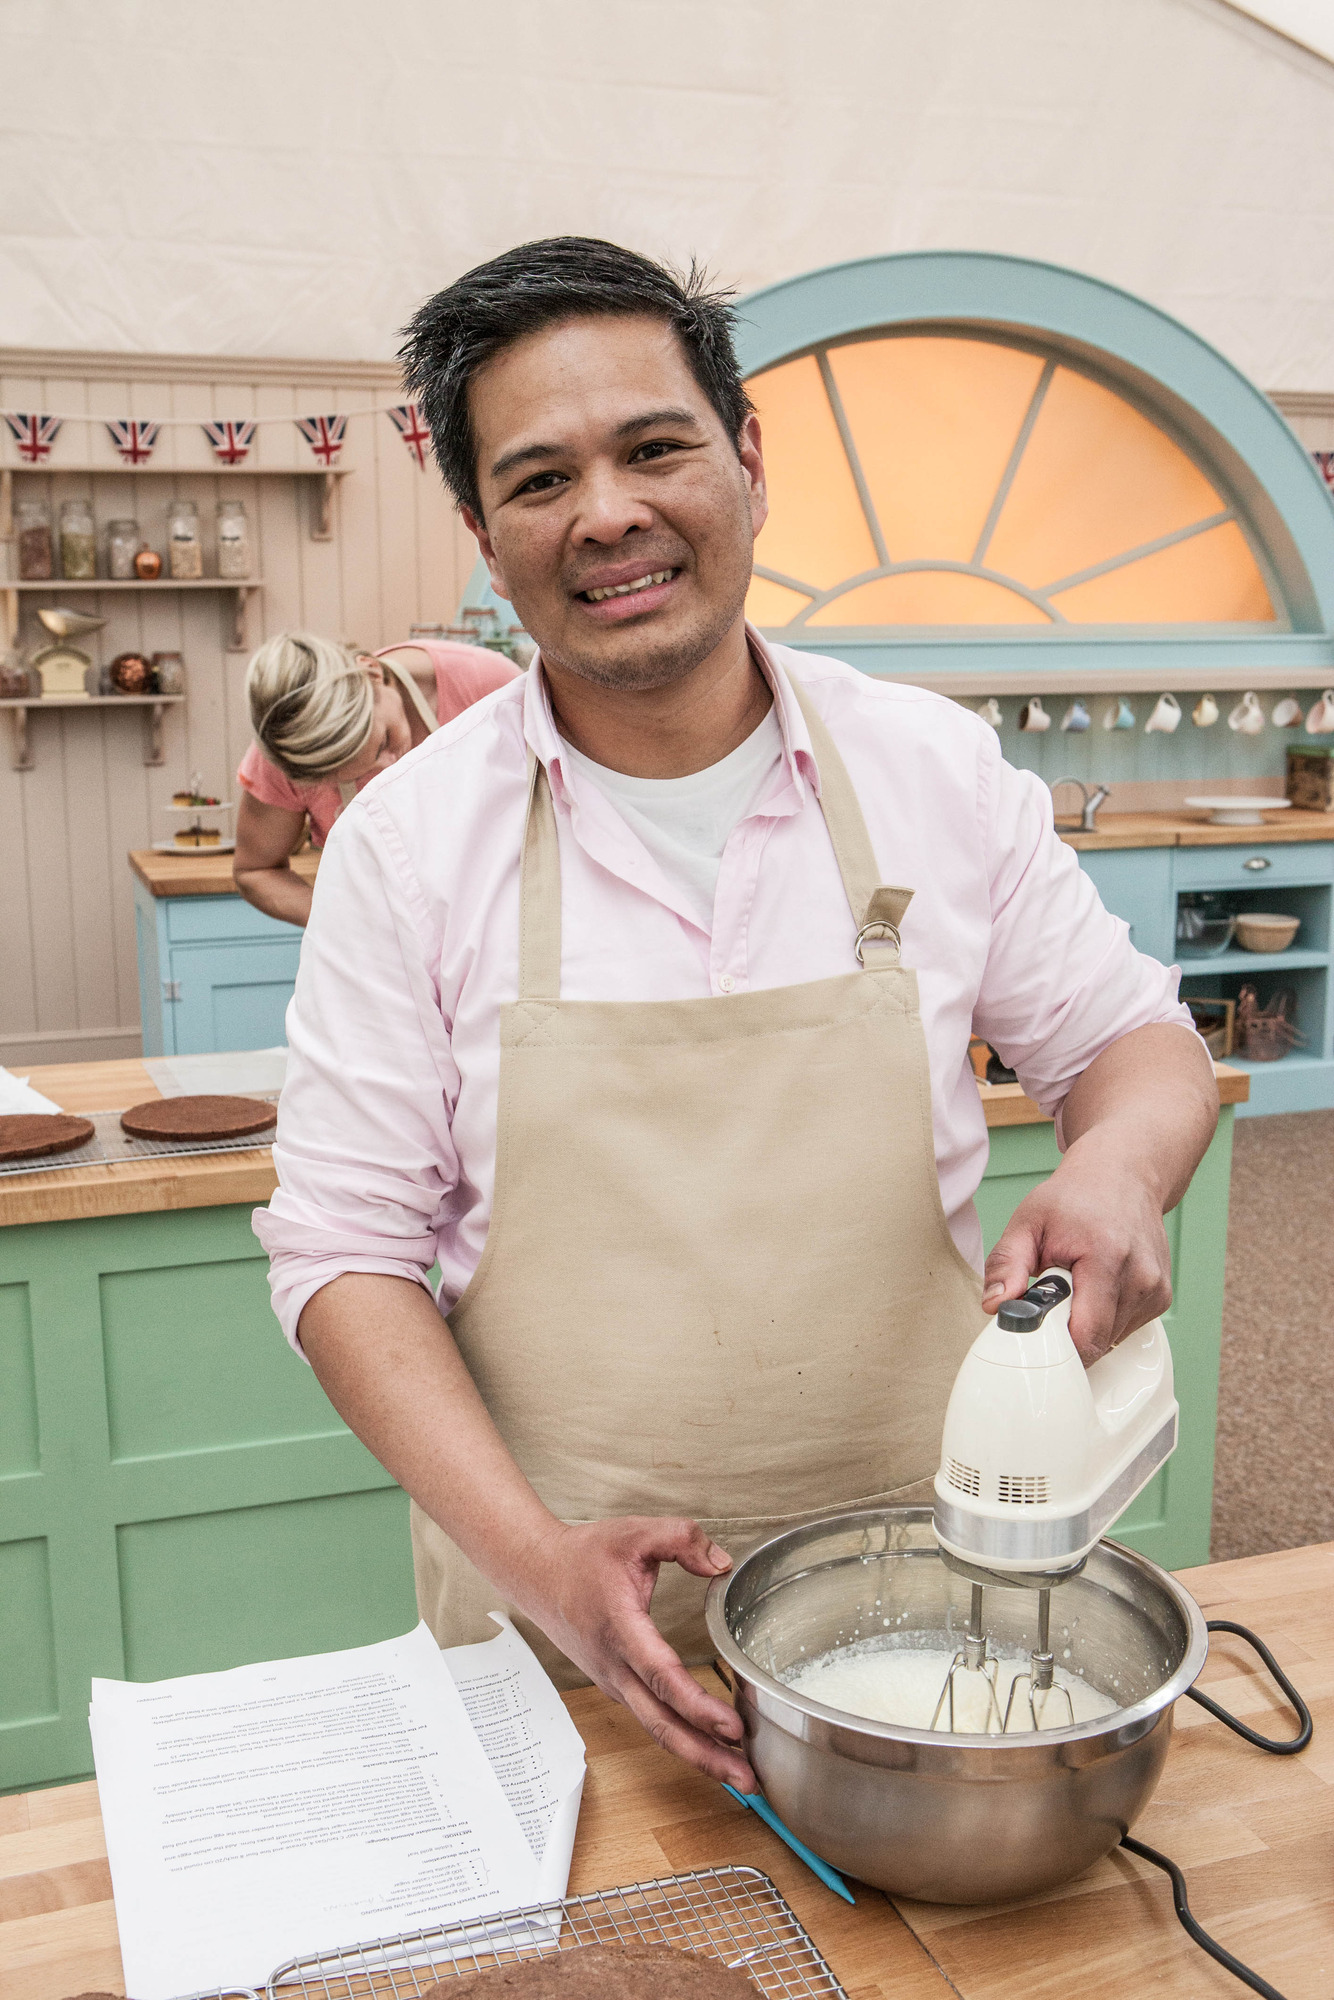 Alvin from The Great British Bake Off